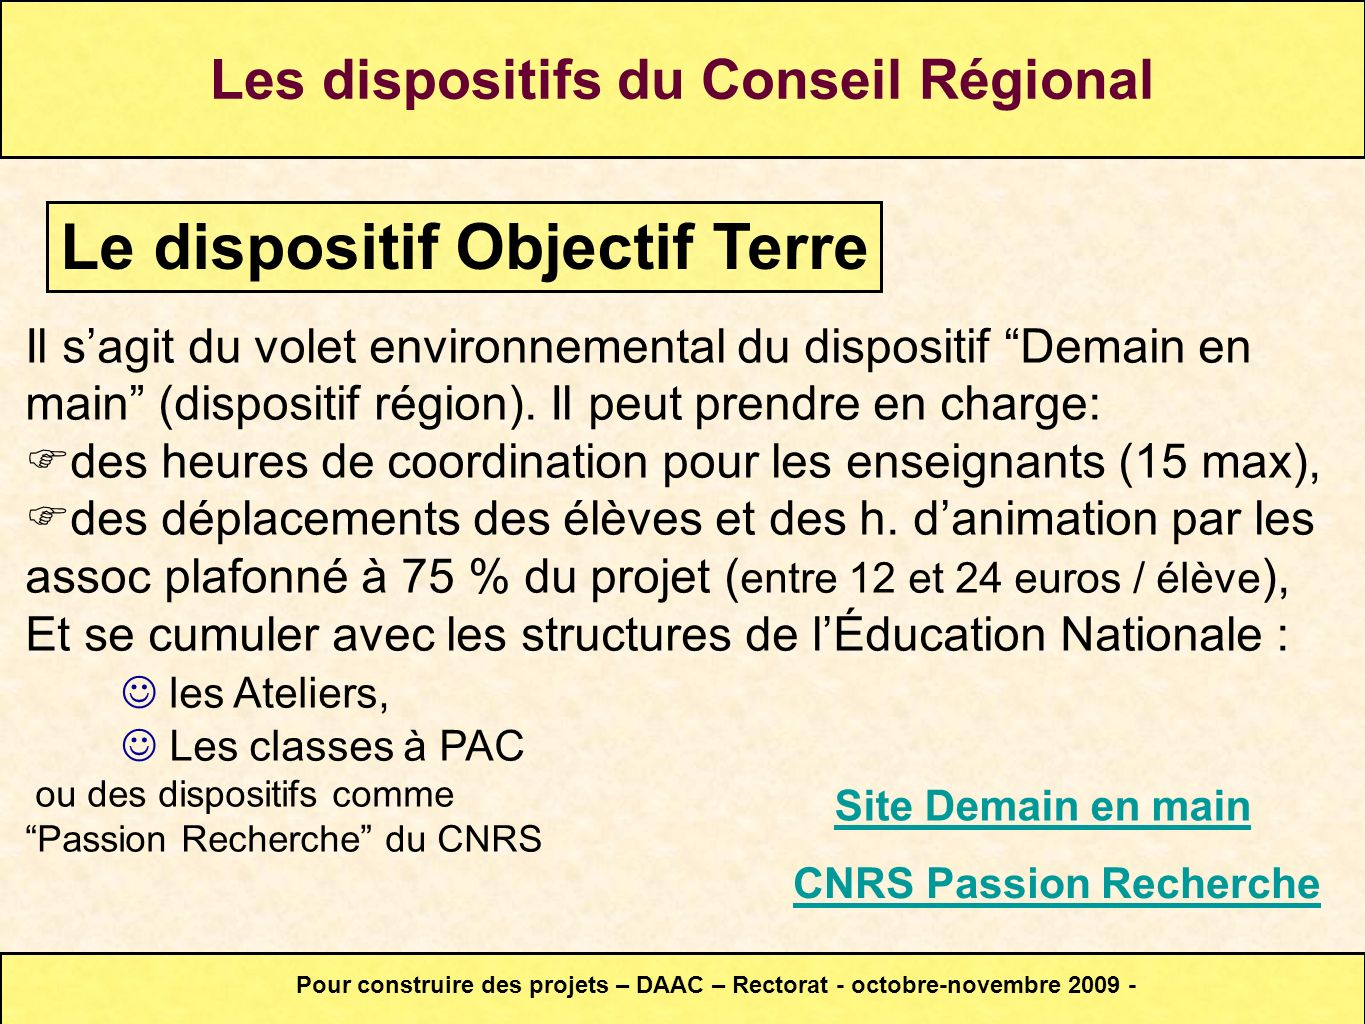 Il sagit du volet environnemental du dispositif Demain en main (dispositif région).